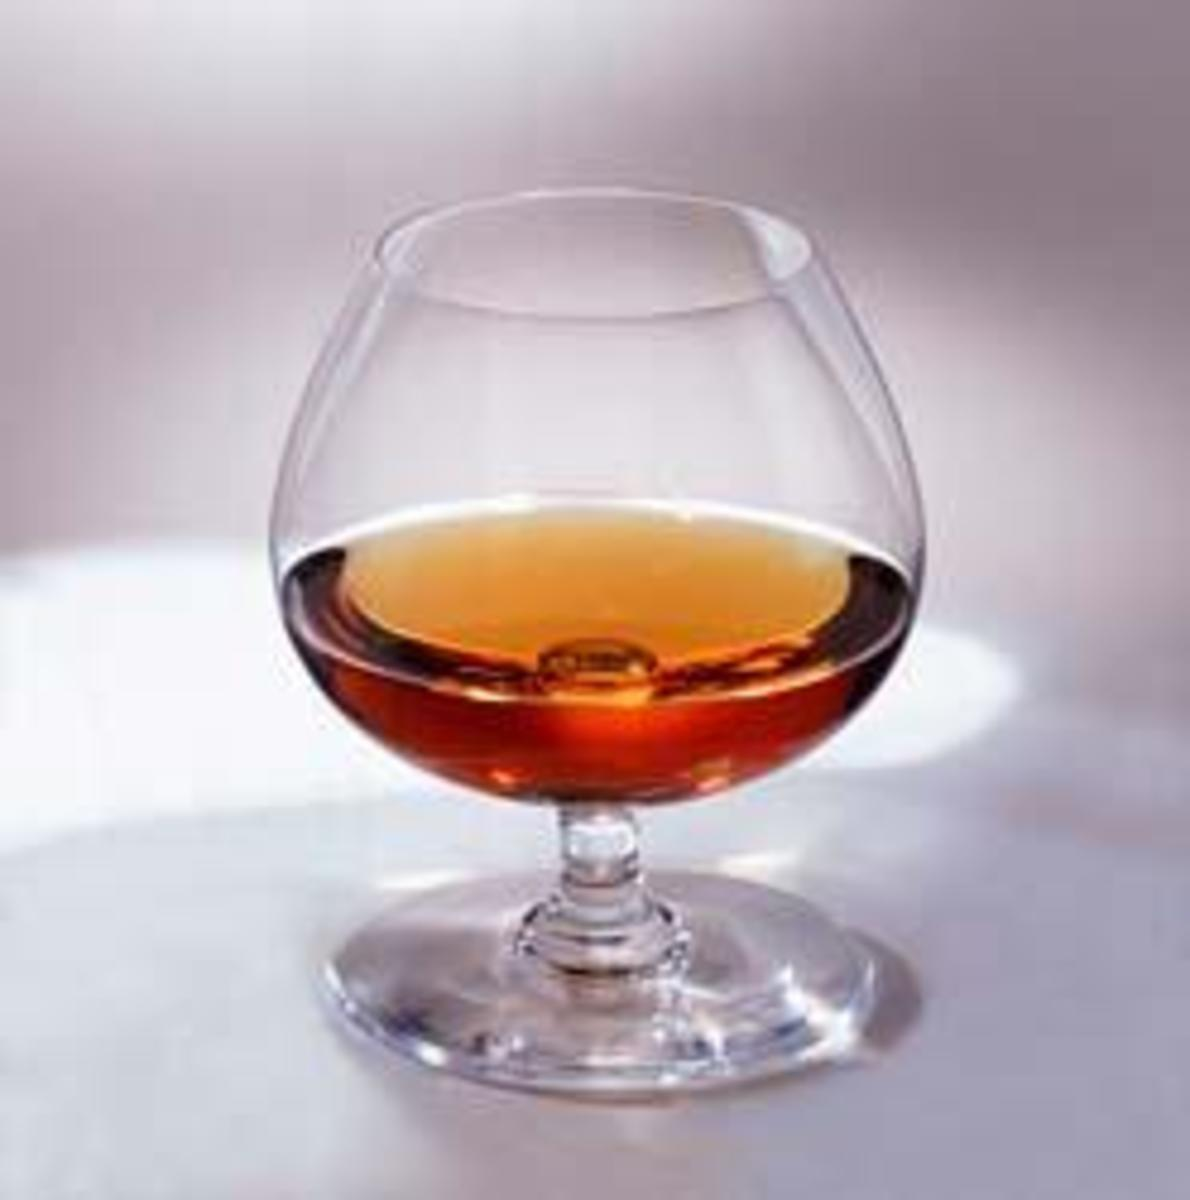 A snifter of Cognac